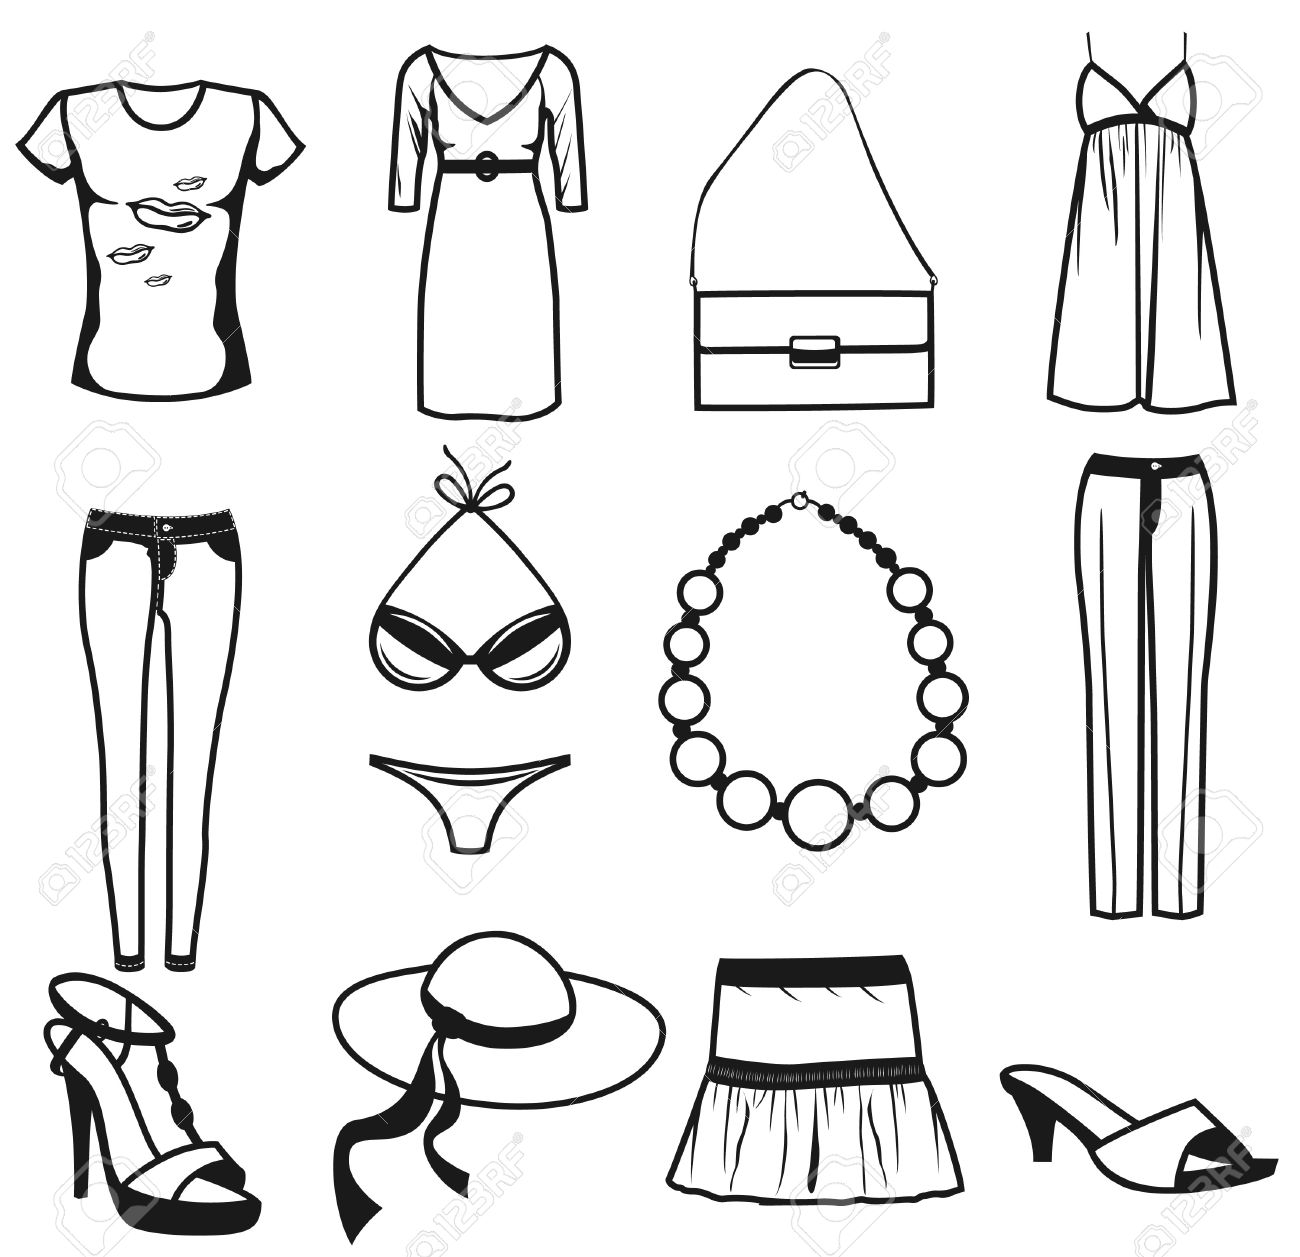 Women clothes and accessories summer icon set. Isolated on white background. Stock Vector - 9925098